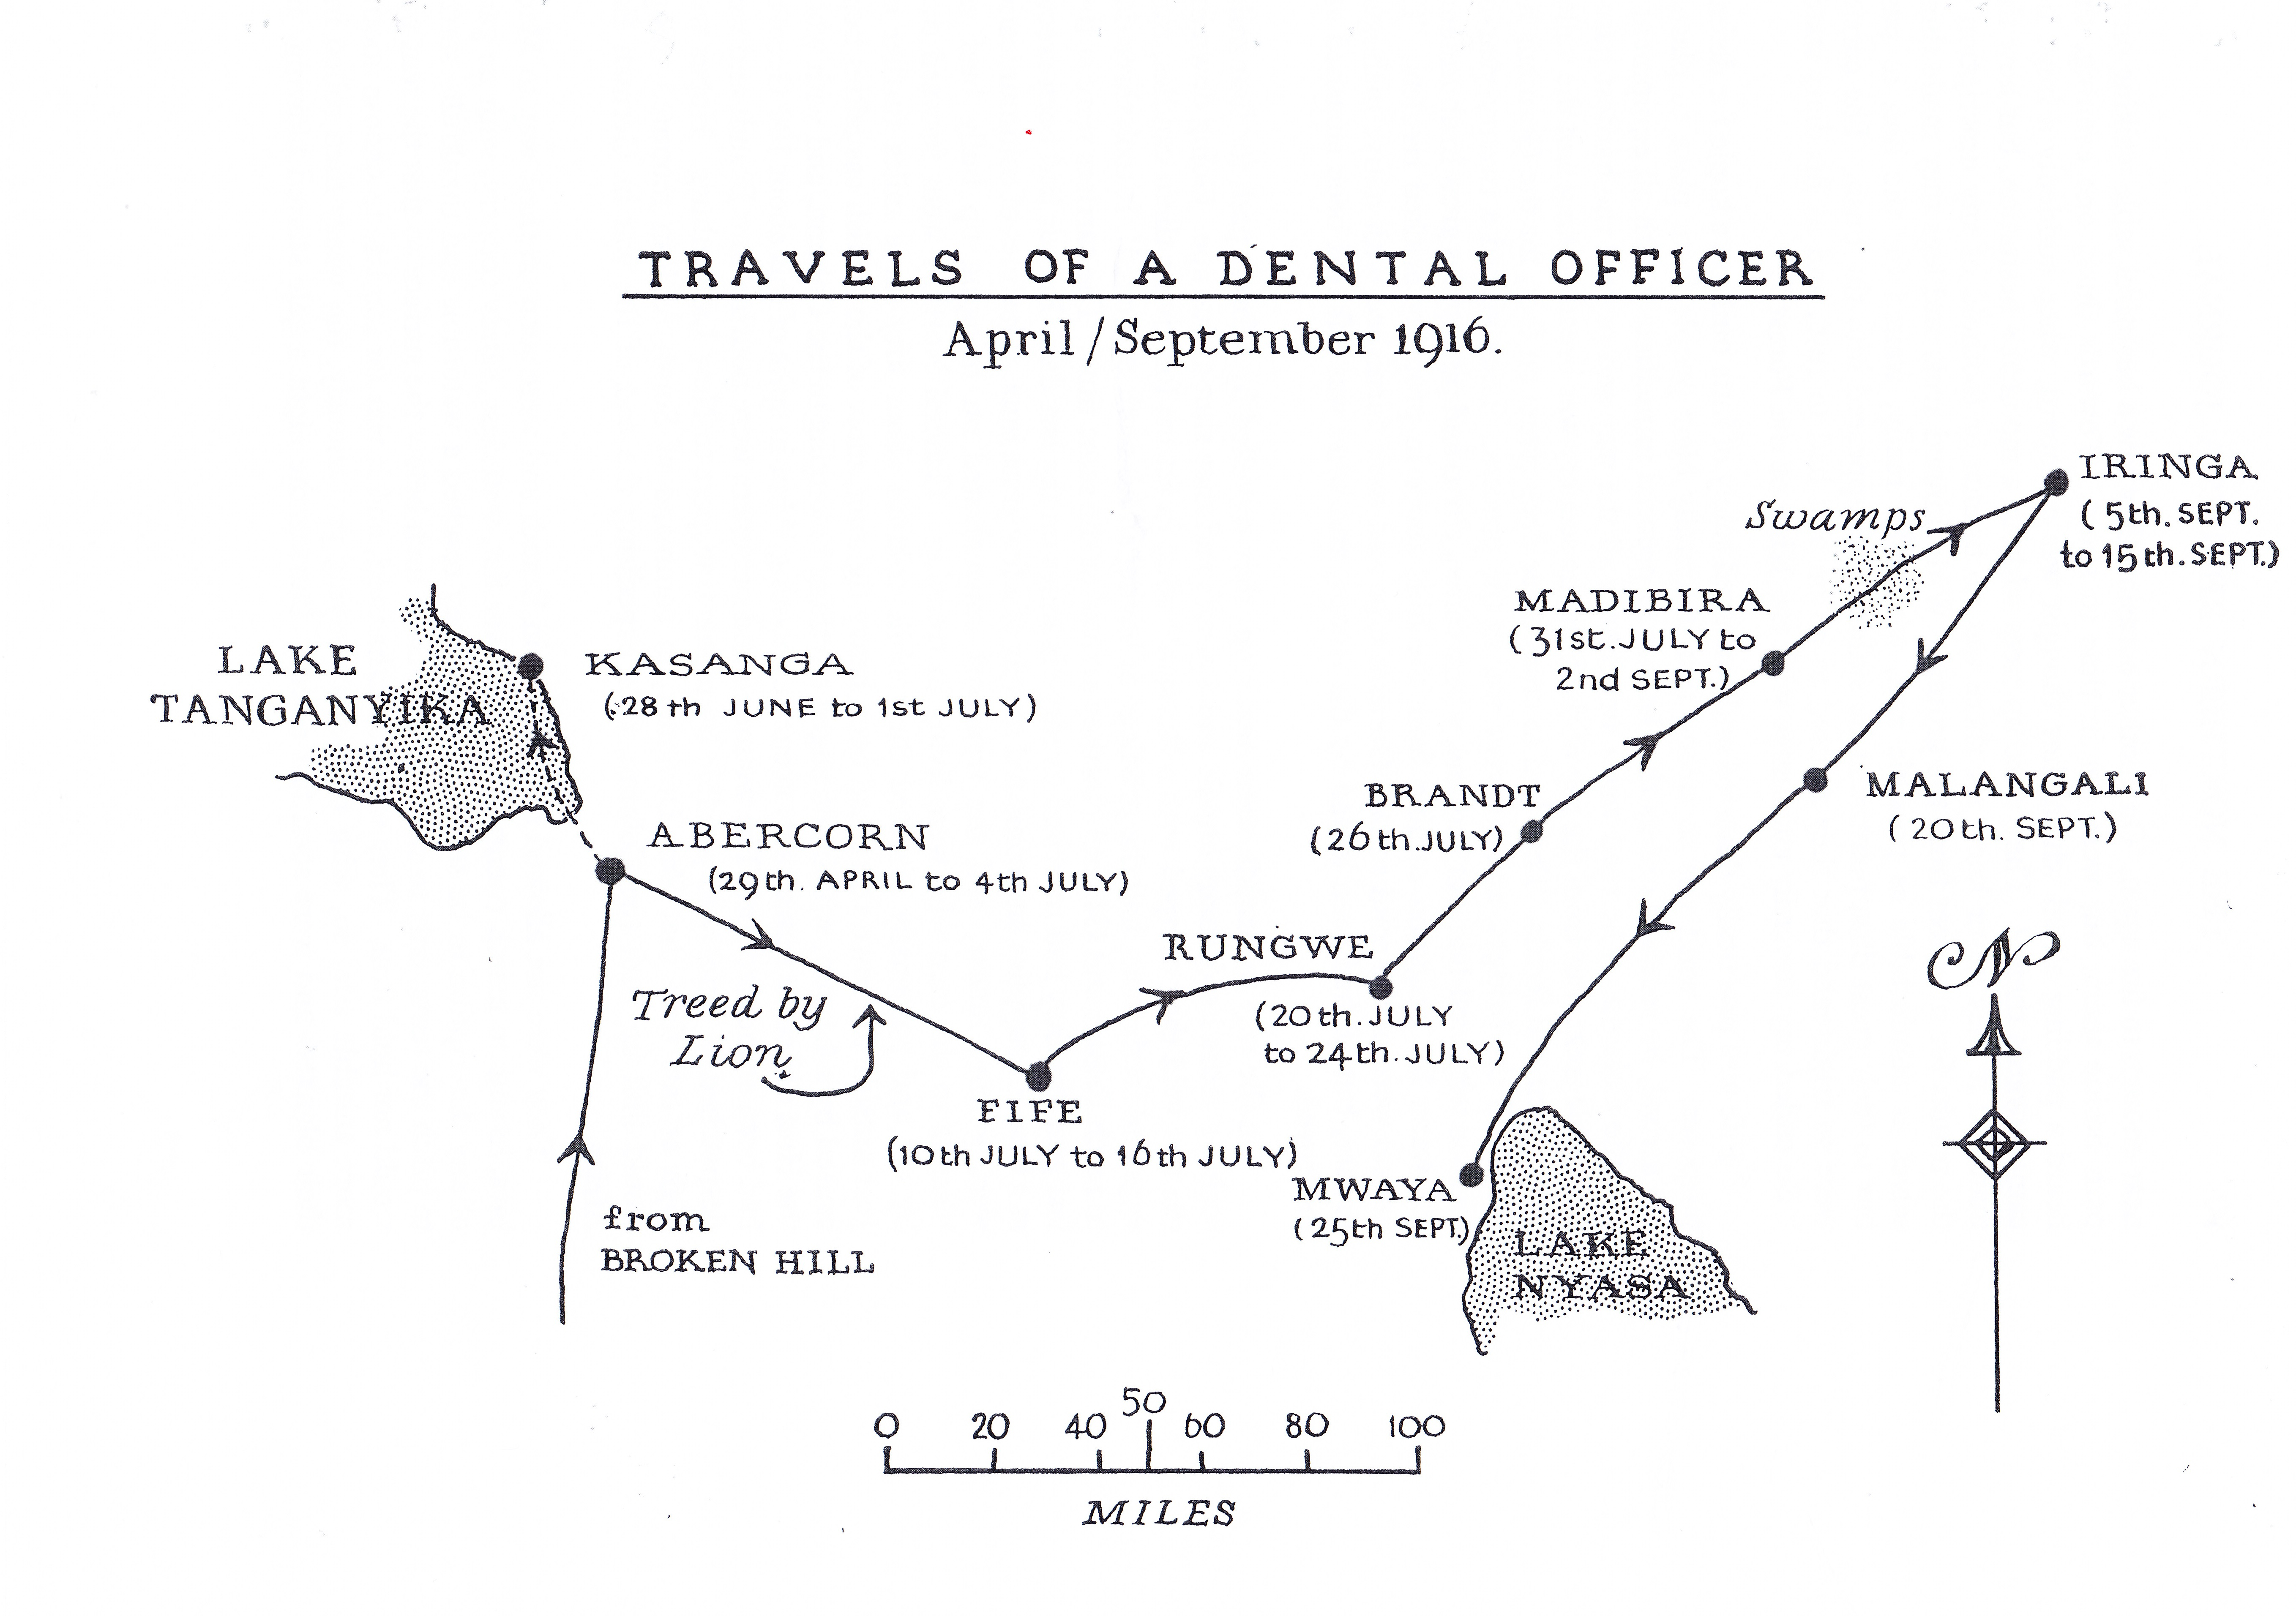 A map drawn by William of his expedition to the border of German East Africa in mid 1916